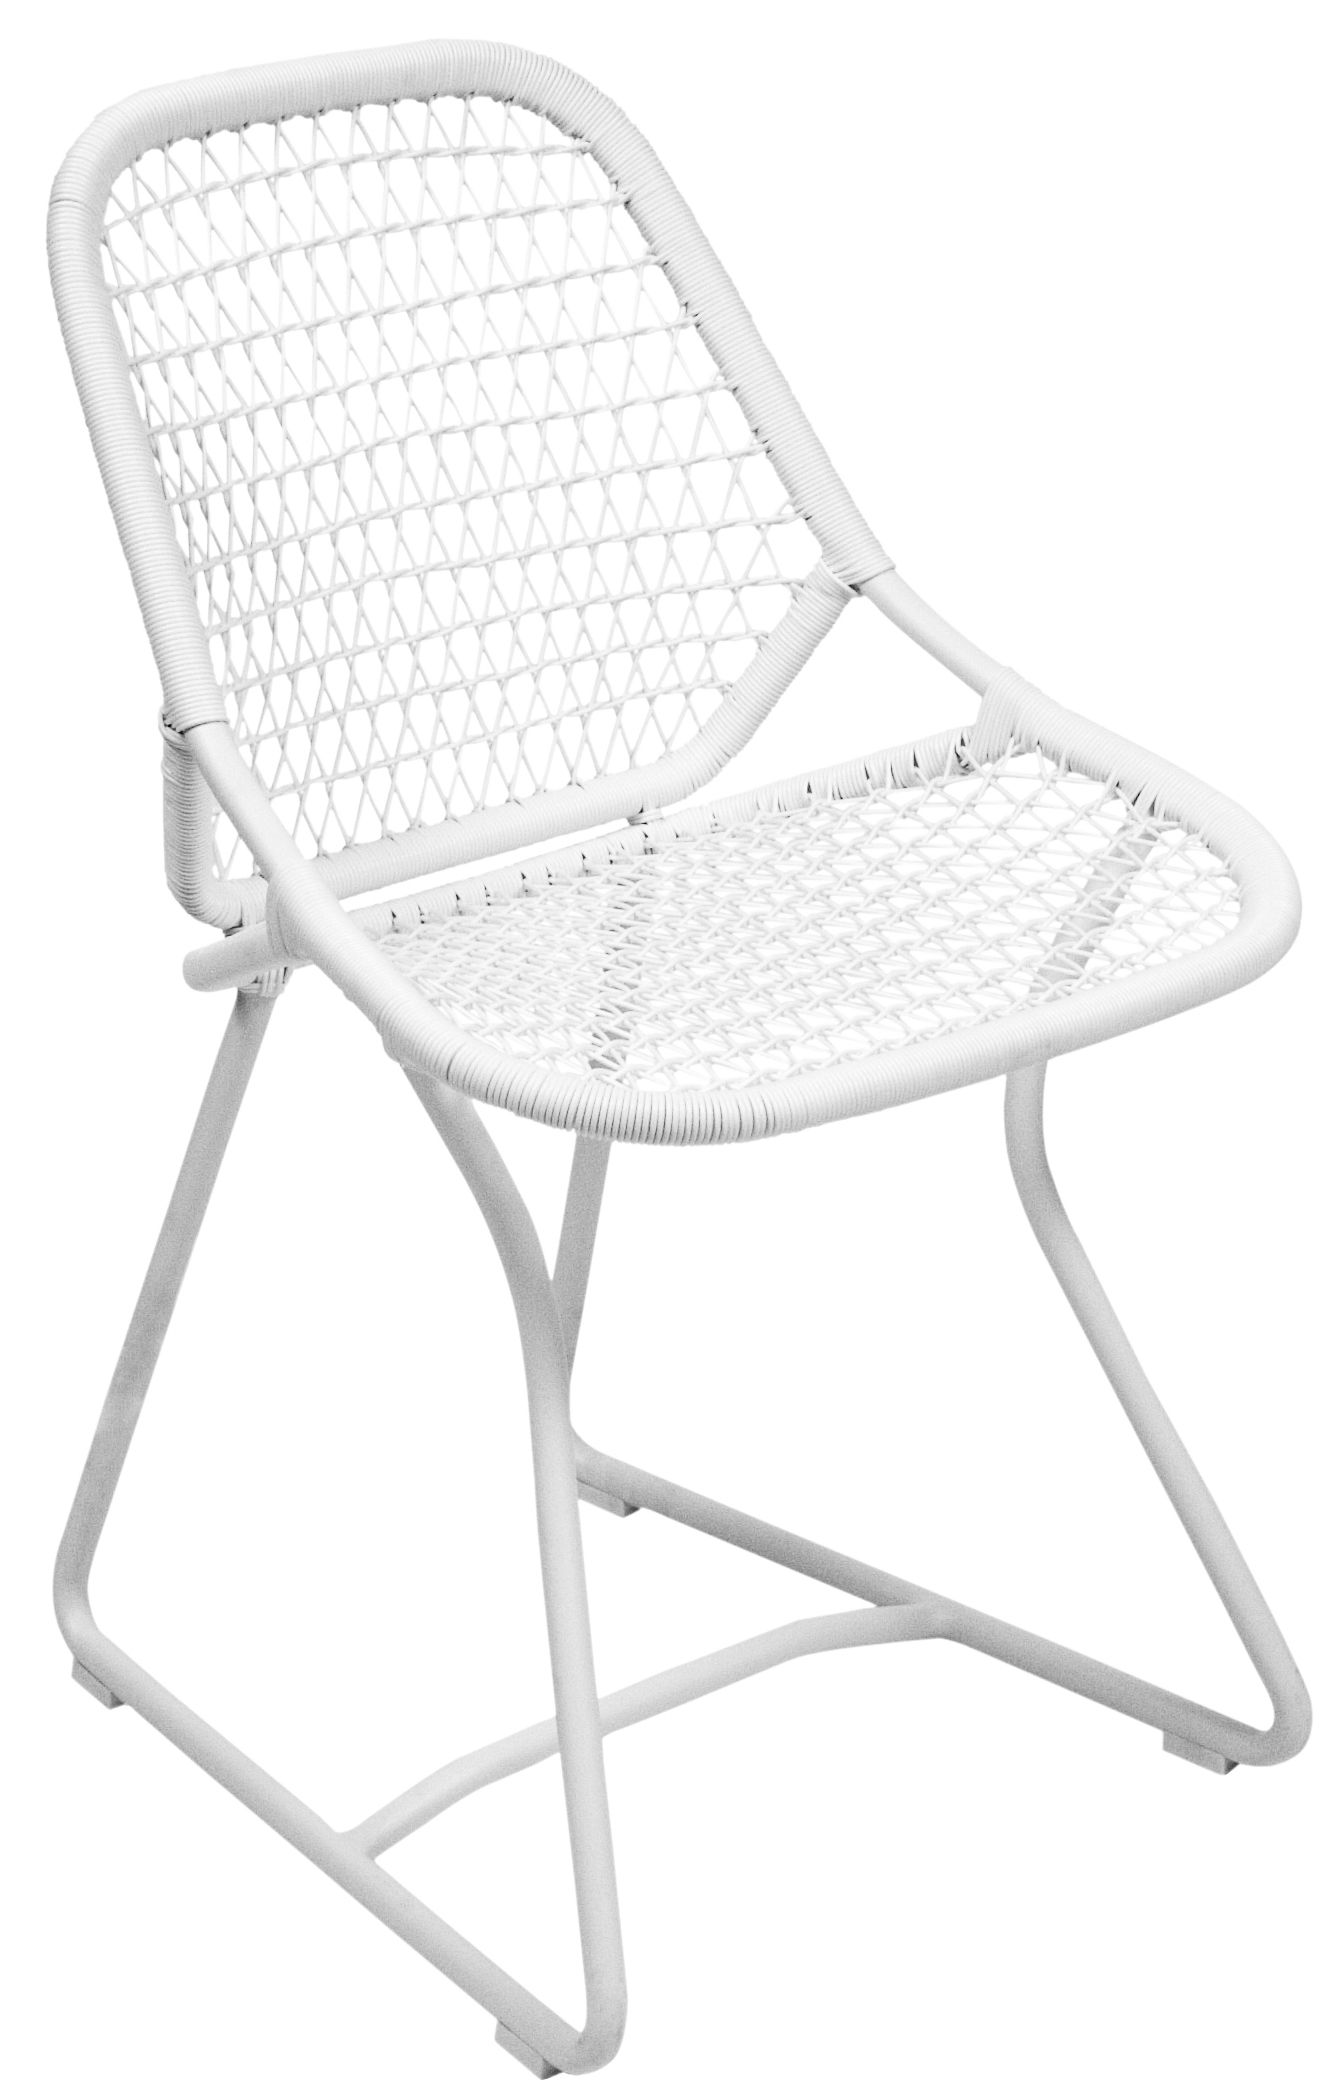 Furniture - Chairs - Sixties Chair - Flexible seat by Fermob - Cotton white / White - Aluminium, Polymer resin